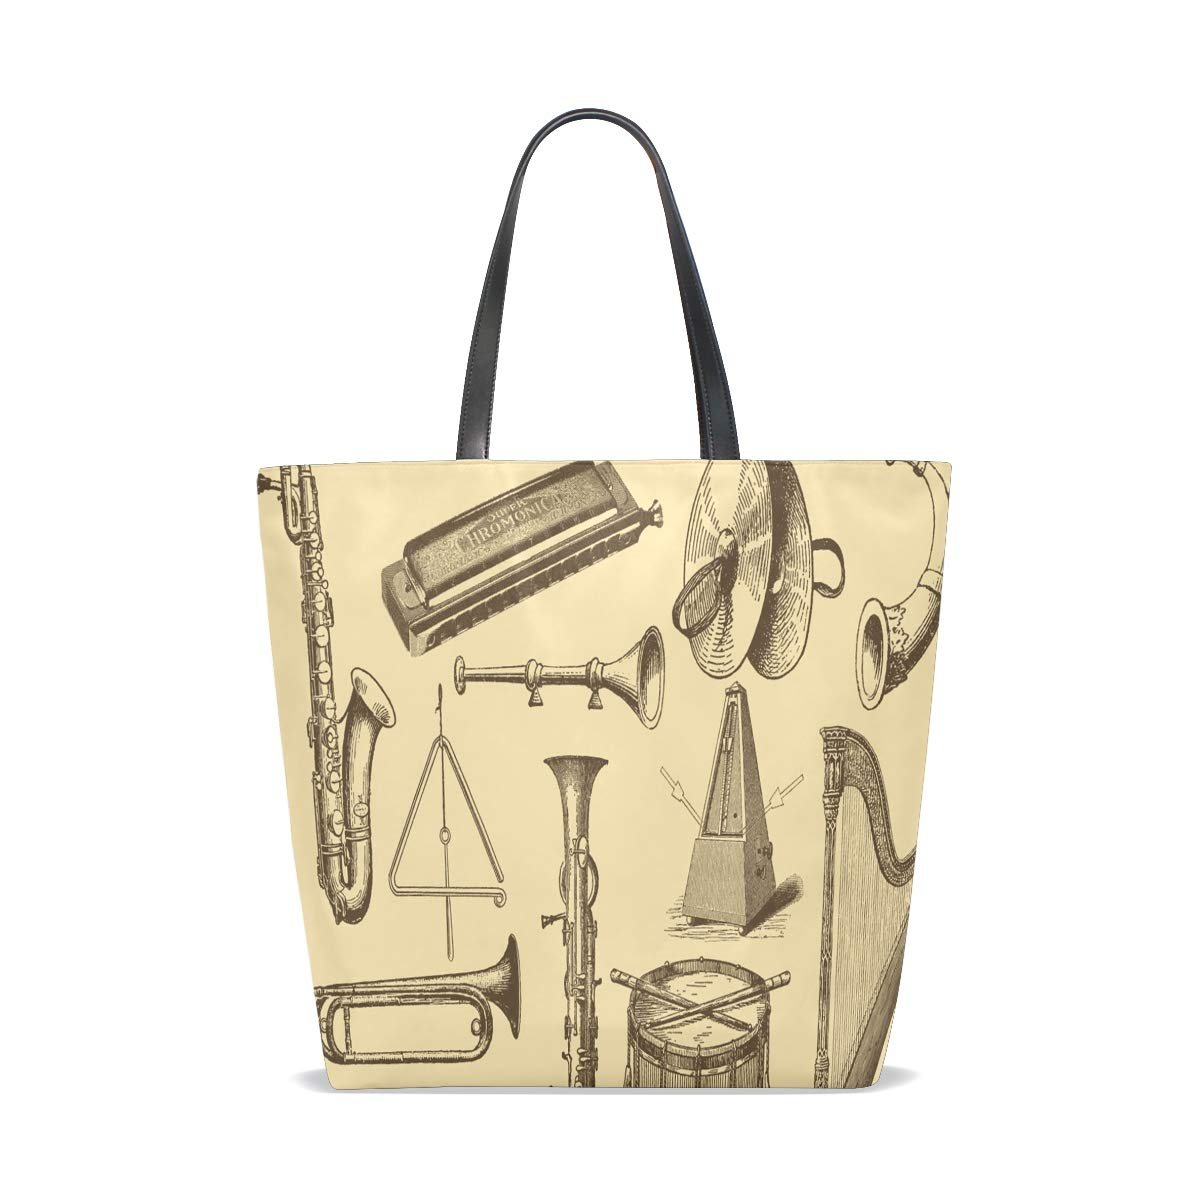 Old Style Drawing Musical Instruments Tote Bag Purse Handbag Womens Gym Yoga Bags for Girls